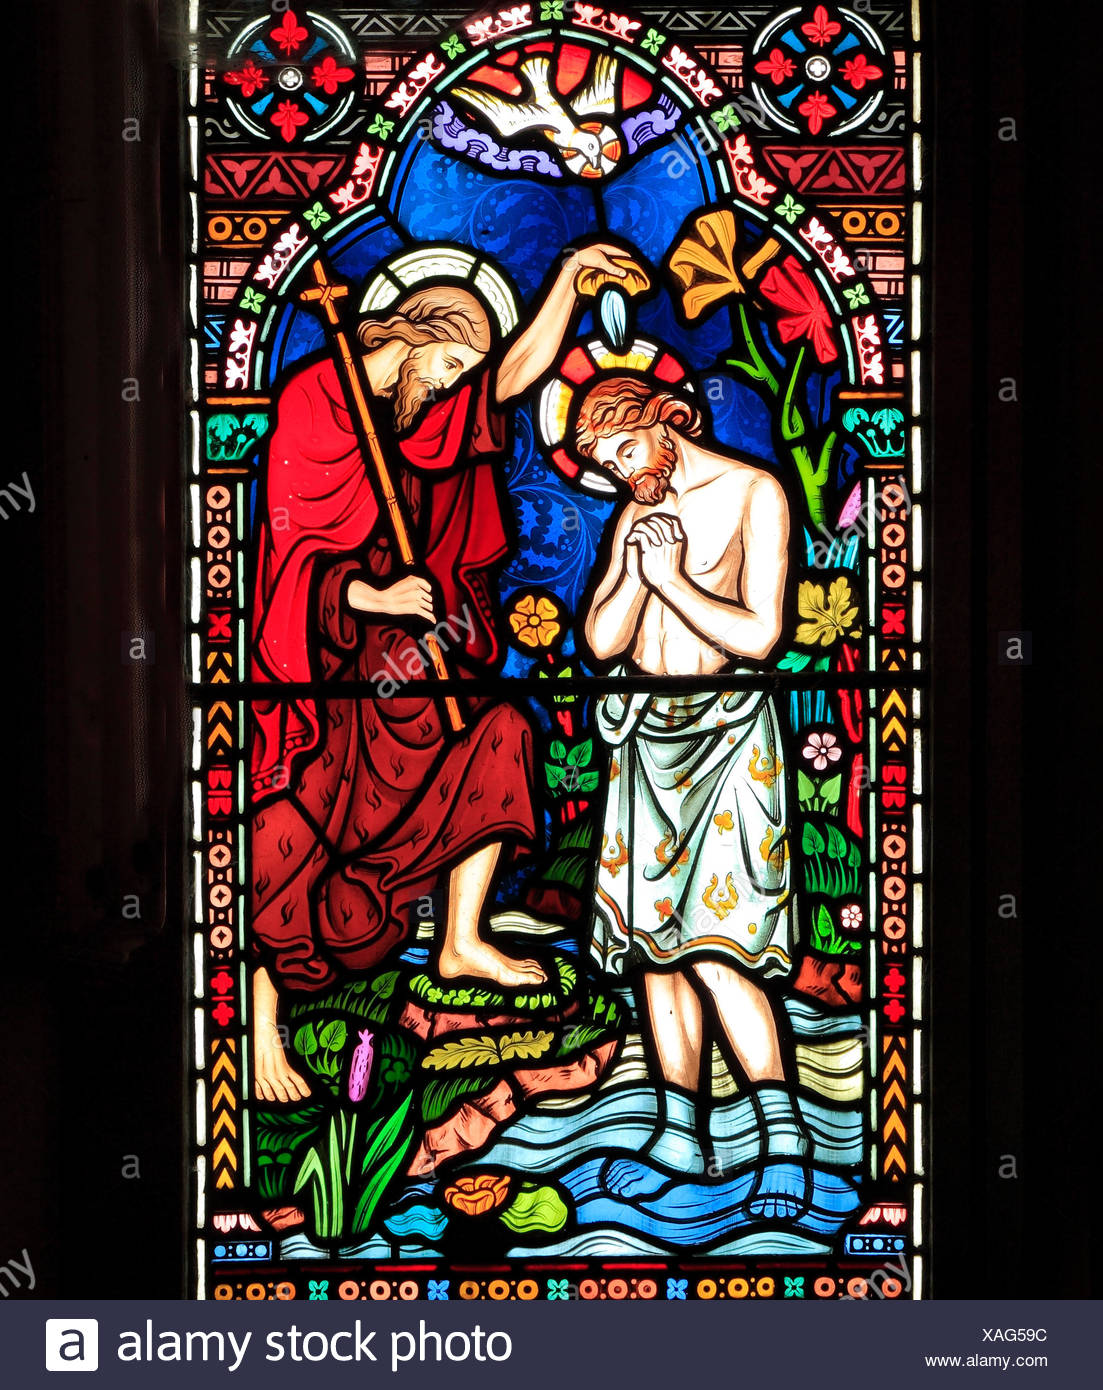 Life of Jesus, Baptism by John the Baptist, in River Jordan, stained glass window by Frederick Preedy, 1865, Gunthorpe, Norfolk, England, UK - Stock Image